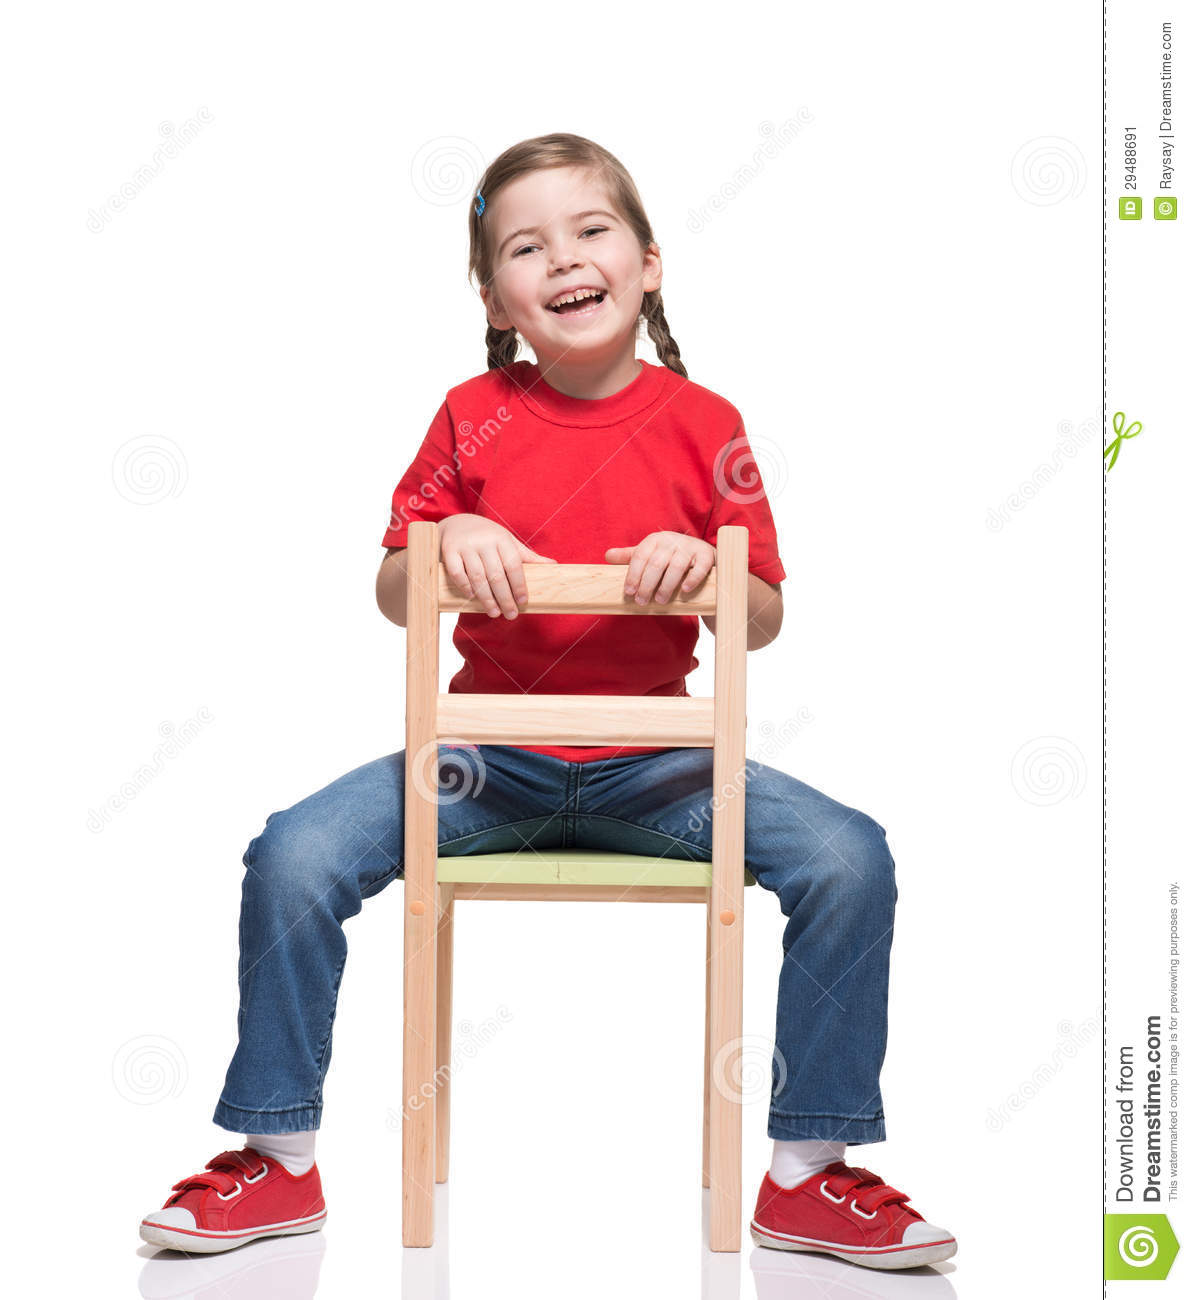 little girl wearing red t short and posing on chair stock image image of small jeans 29488691. Black Bedroom Furniture Sets. Home Design Ideas